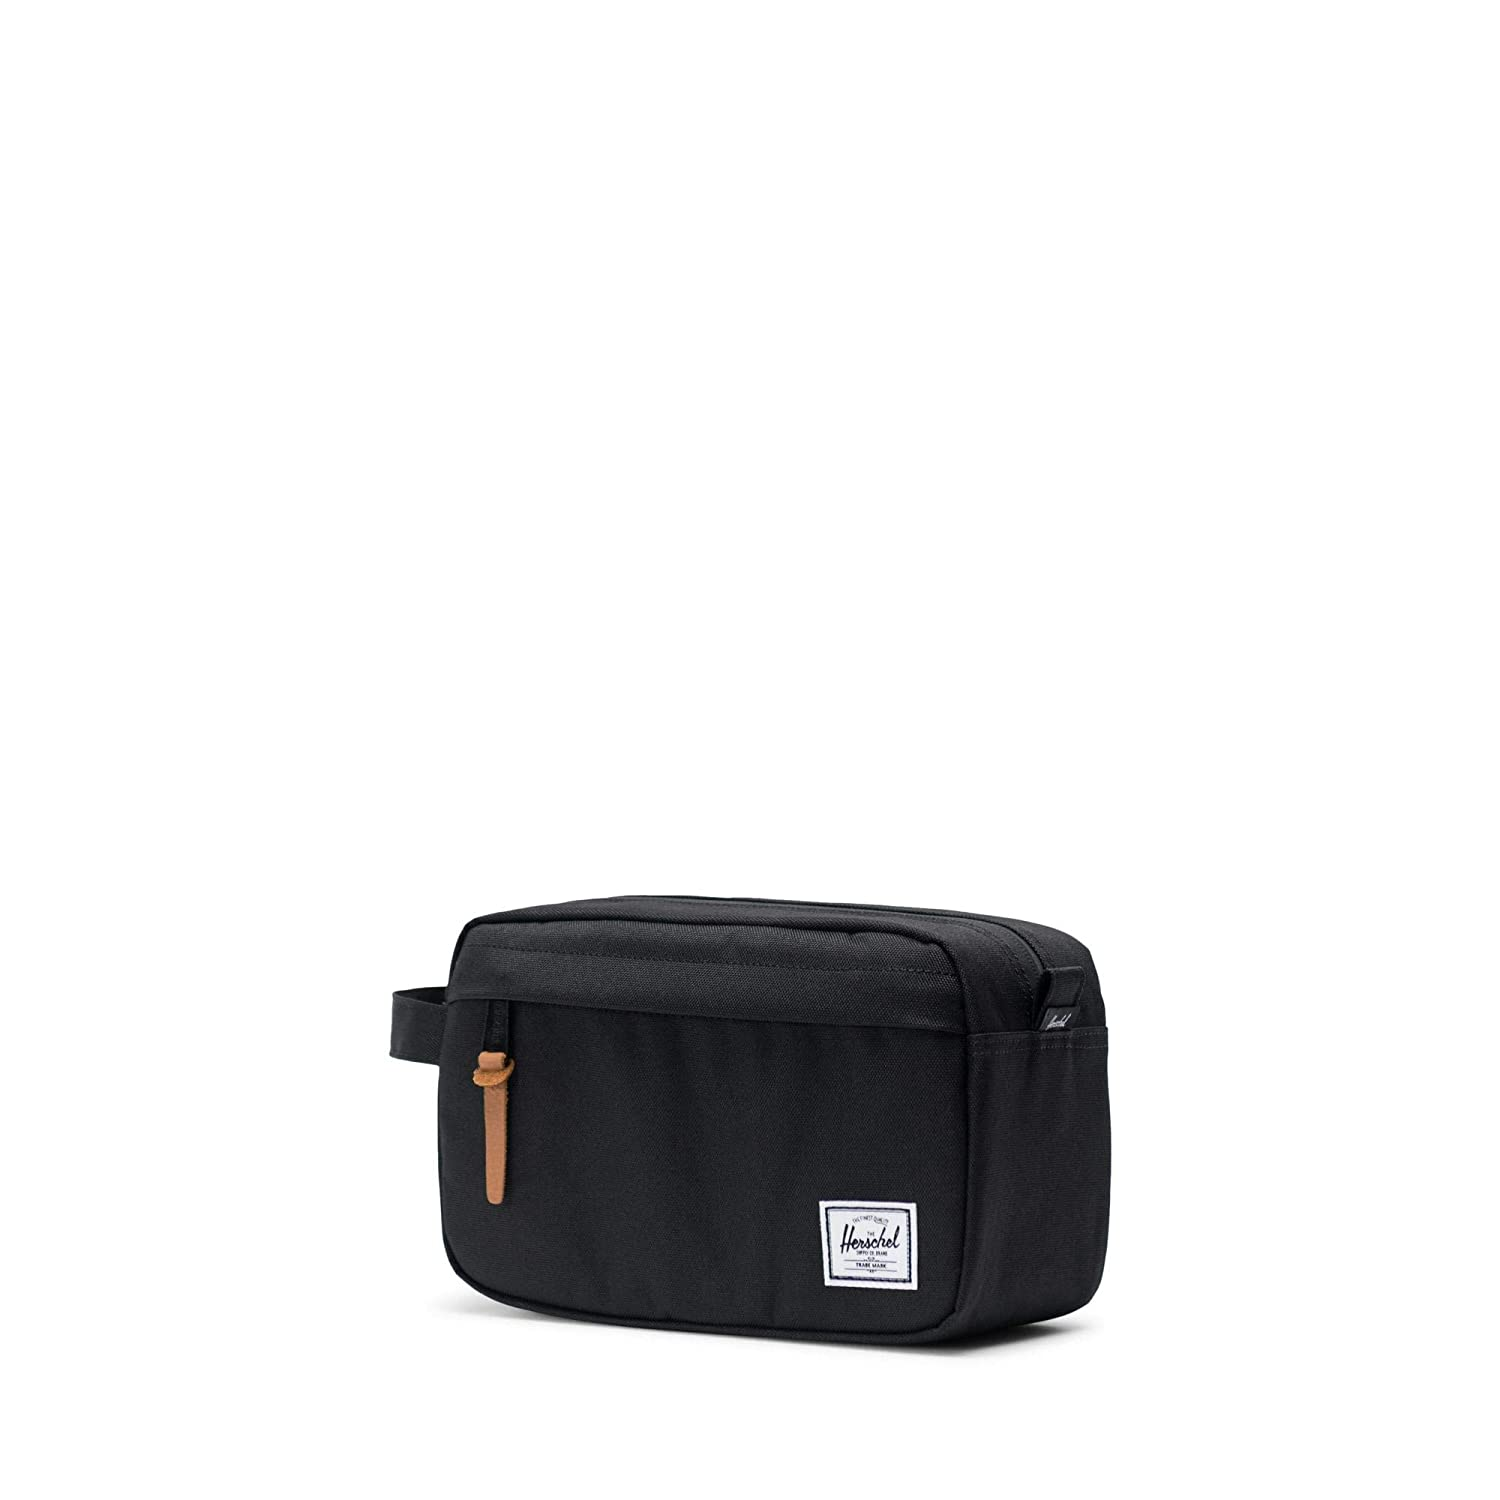 72d2e4fda953 Herschel Toiletry Bag Chapter 10039-00001-OS Black  Amazon.co.uk  Luggage